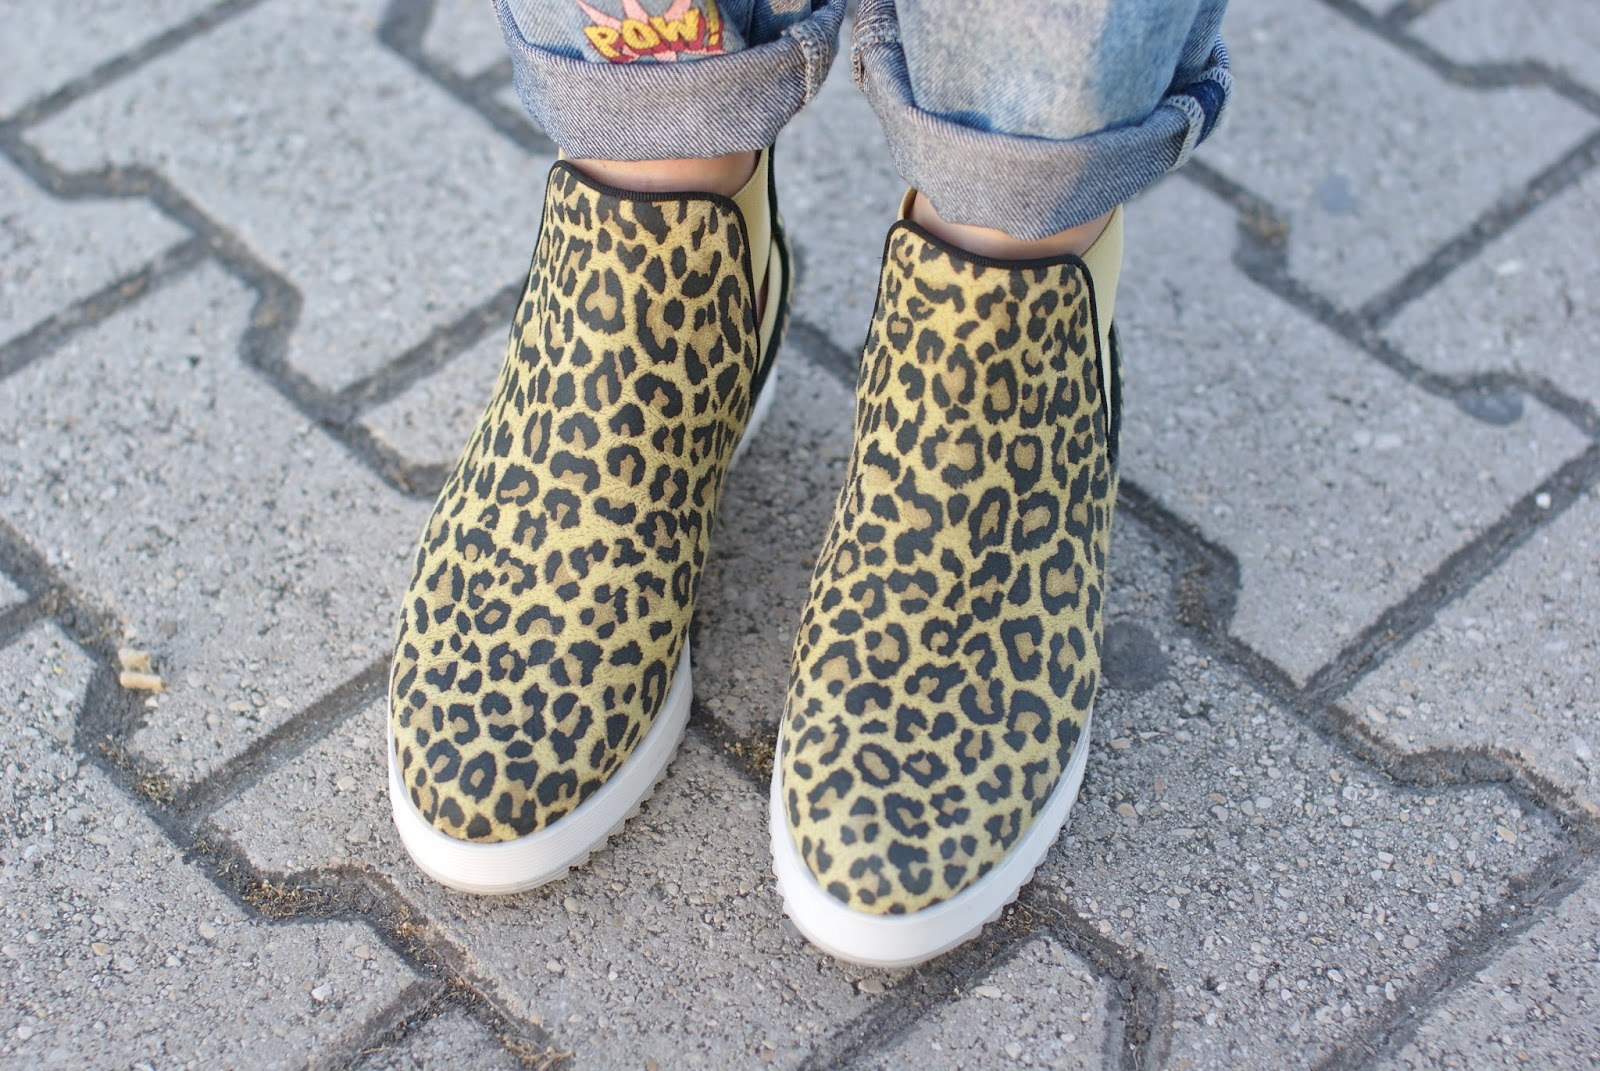 uno8uno tronchetti leopard lime, uno8uno shoes, Fashion and Cookies fashion blog